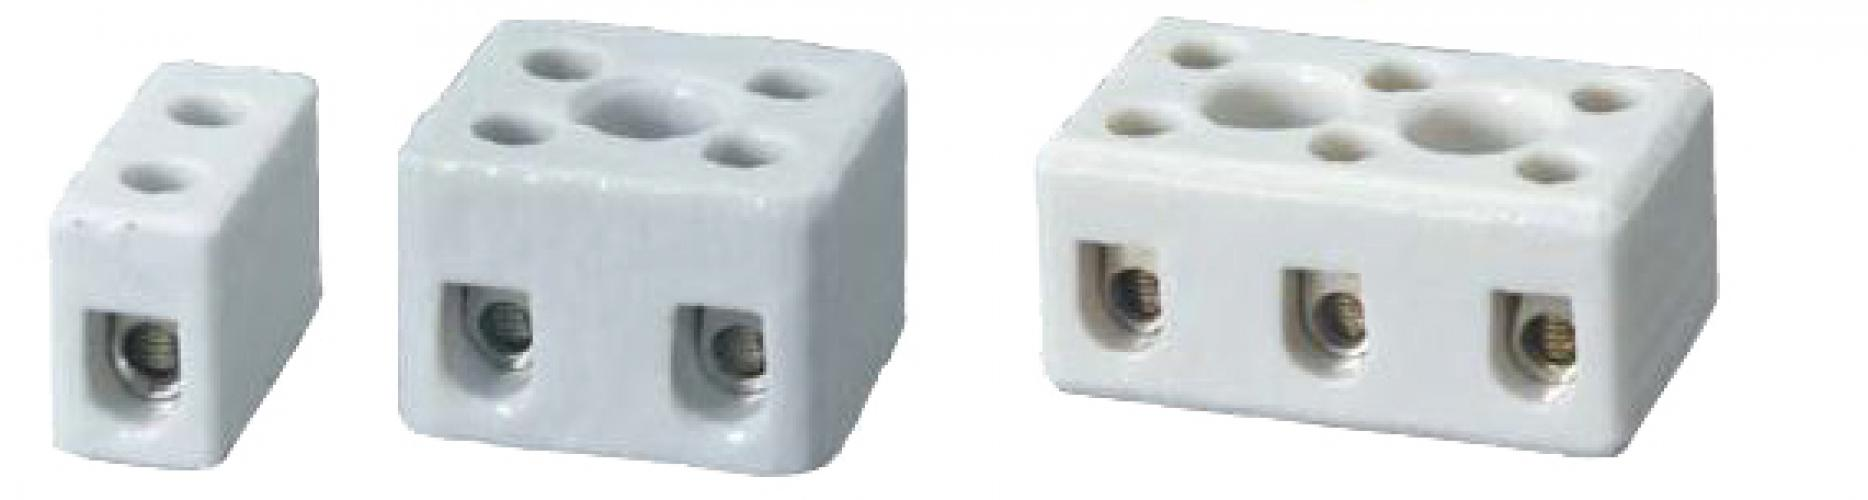 Nice High Temp Wire Connectors Image Collection - Electrical and ...